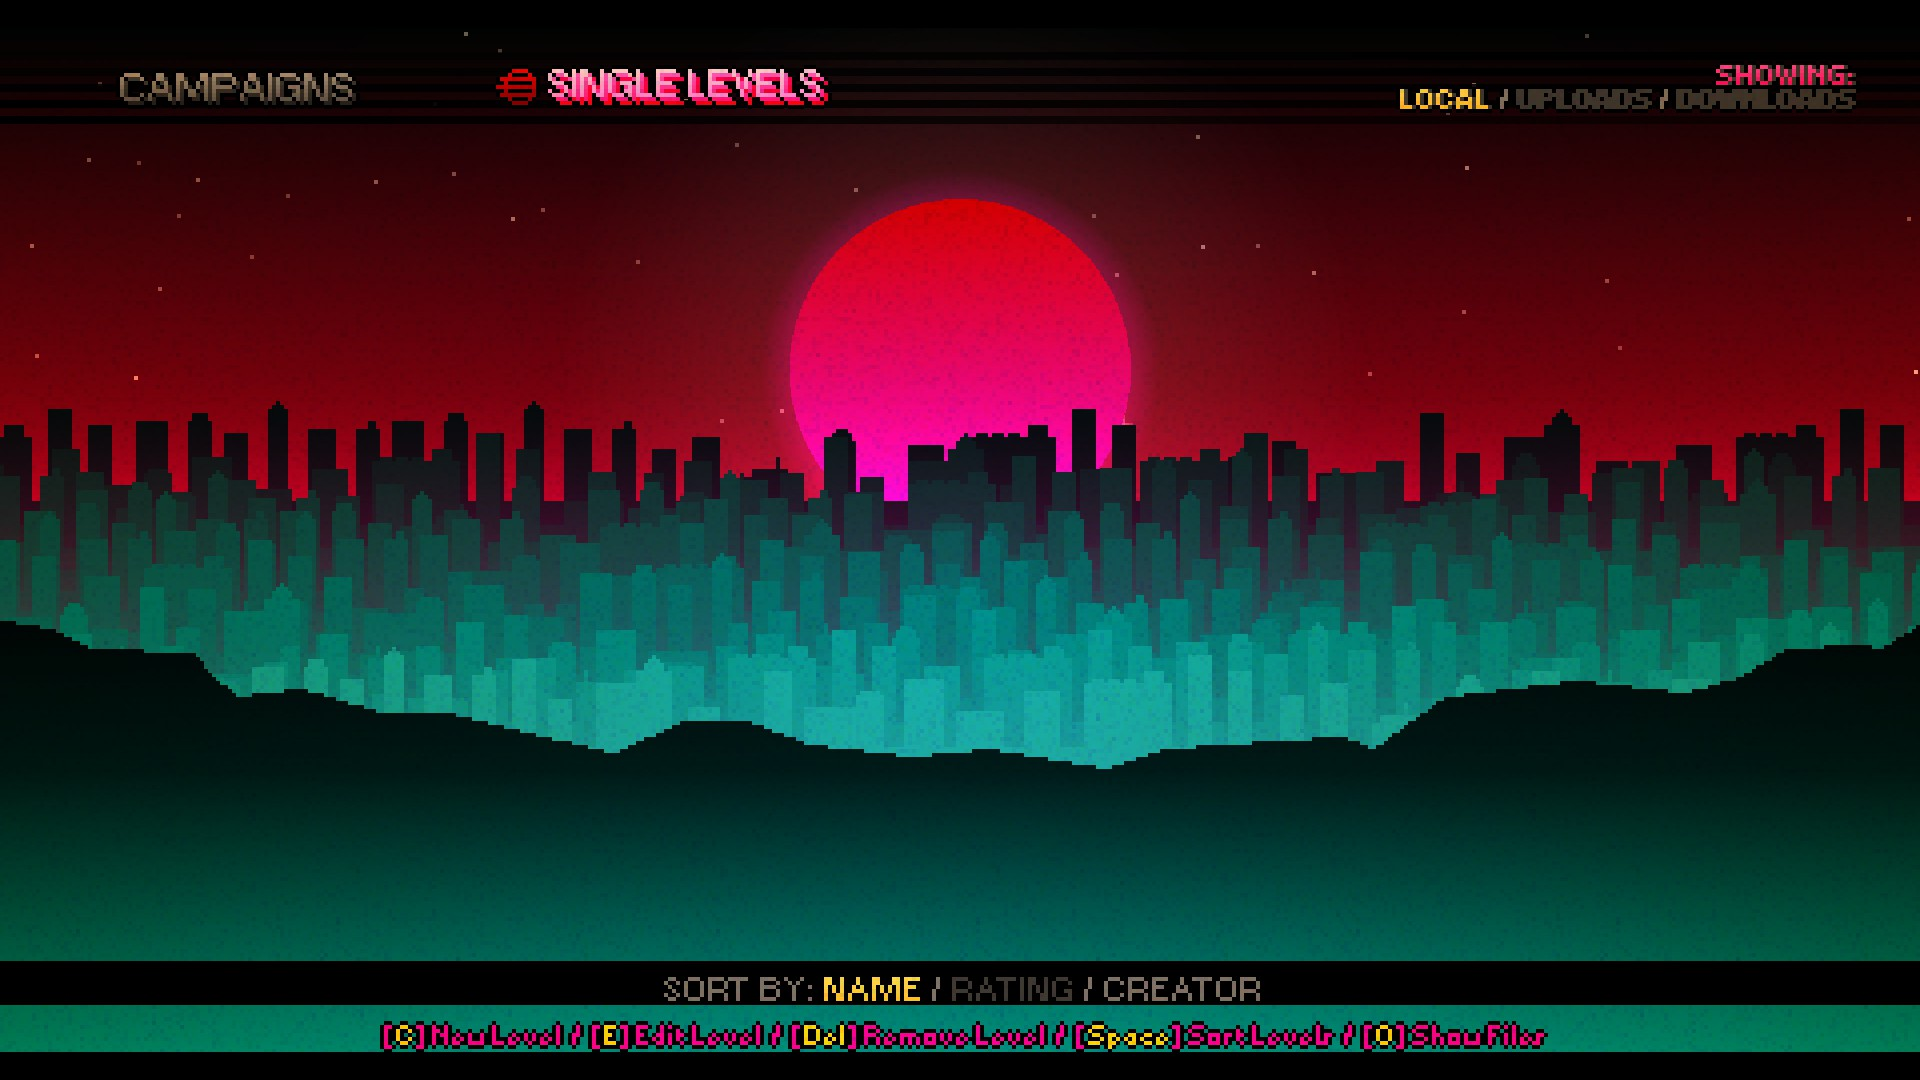 Hotline miami 2 level editor beta: final case (+download link.